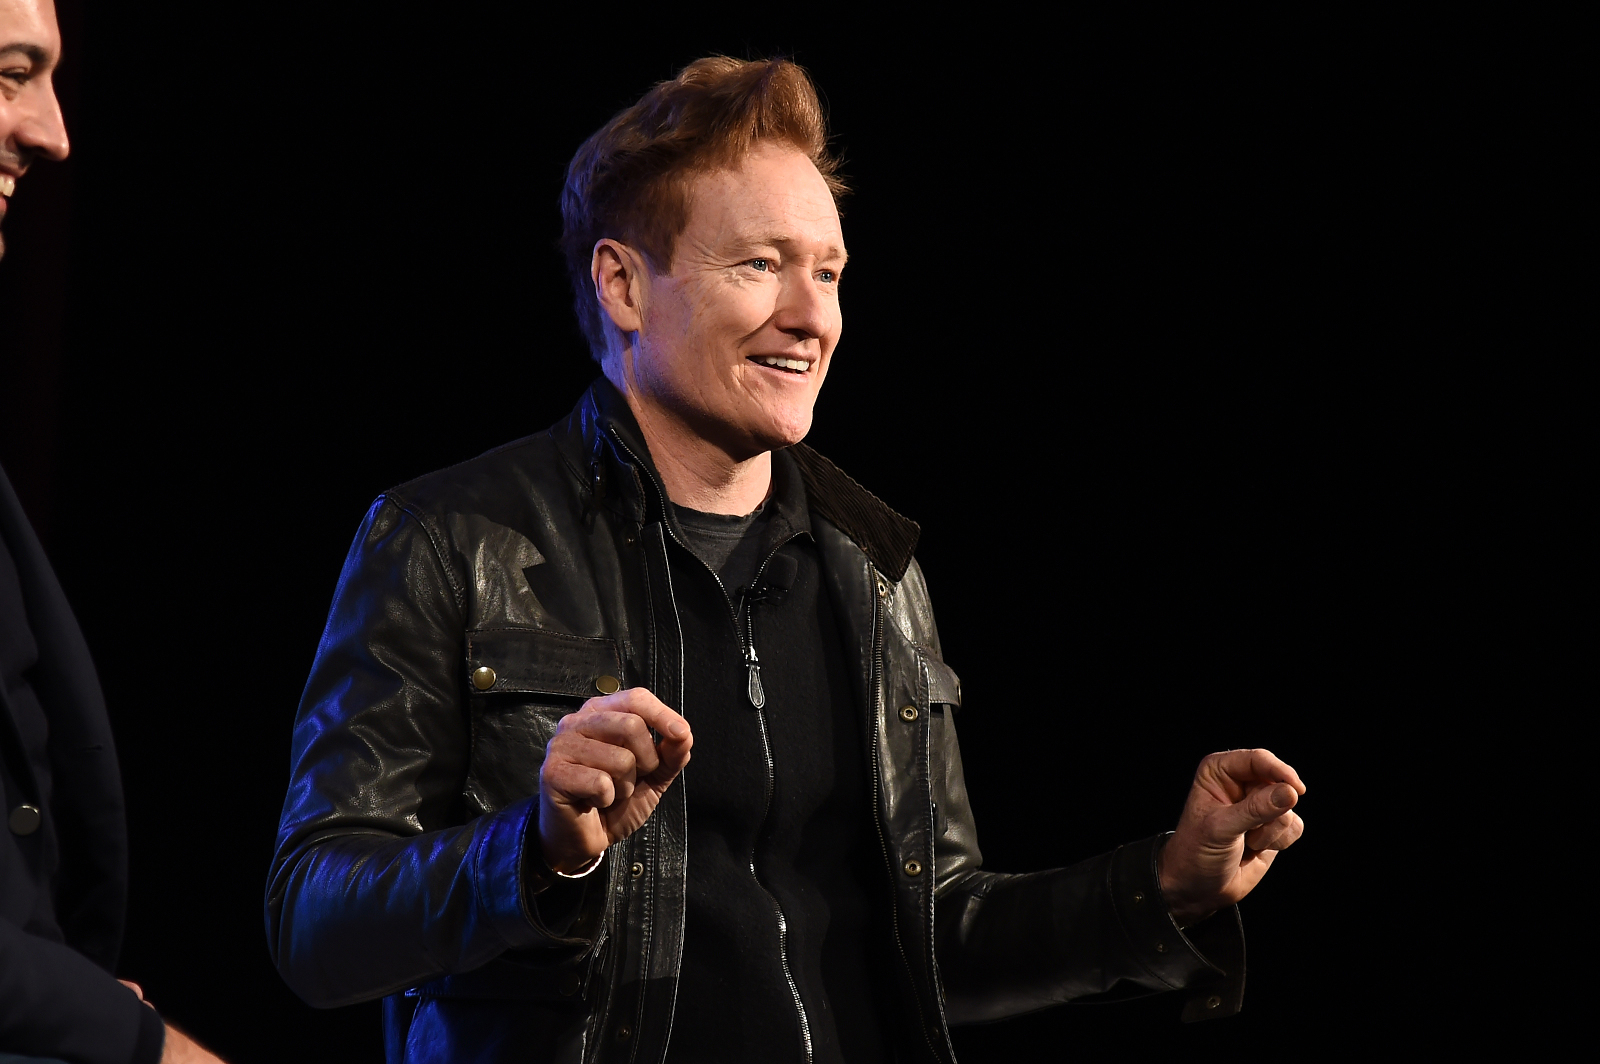 Conan O'Brien and the rest of Team Coco are gearing up to return